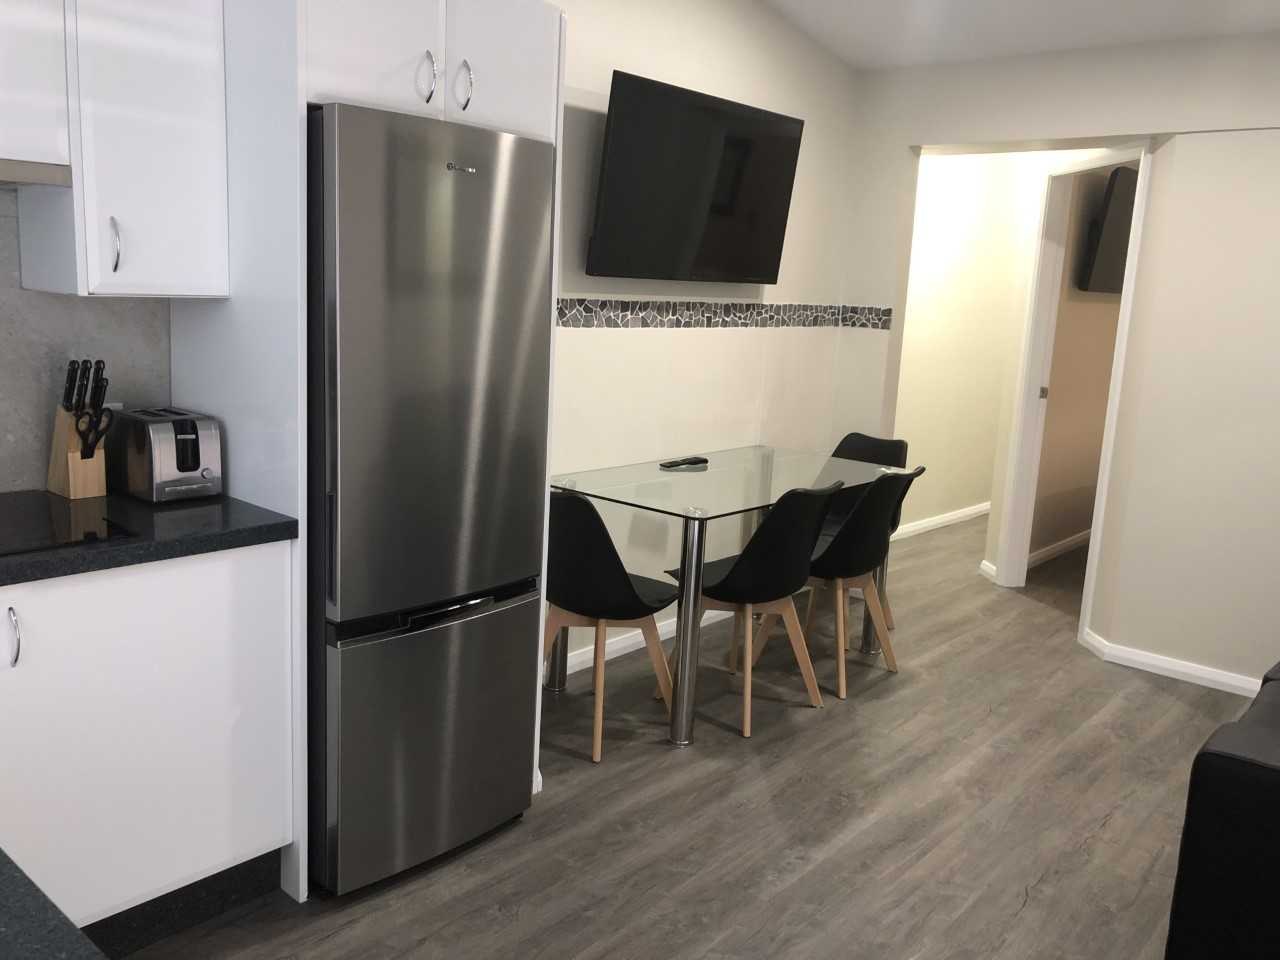 Callaghan Cottages - https://www.newcastleapartments.com.au/wp-content/uploads/2020/02/fridge.jpg